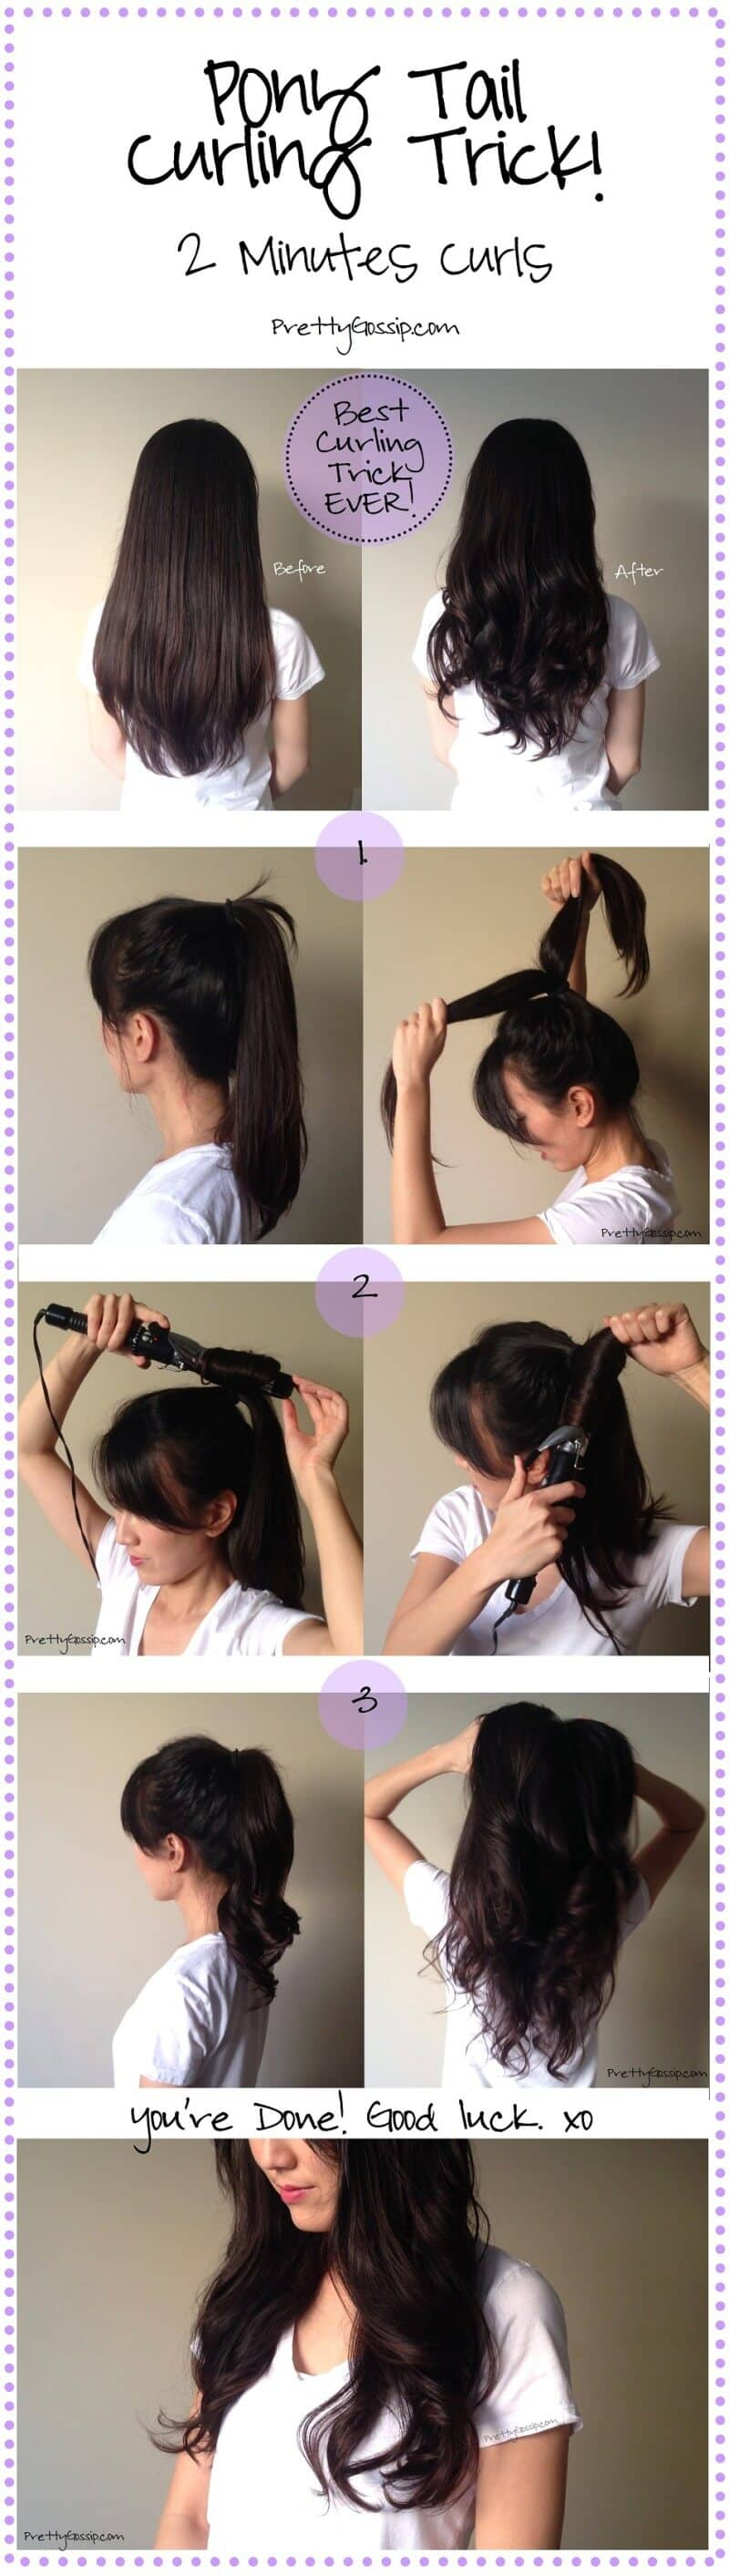 Easy Ponytail Hair Curling Trick